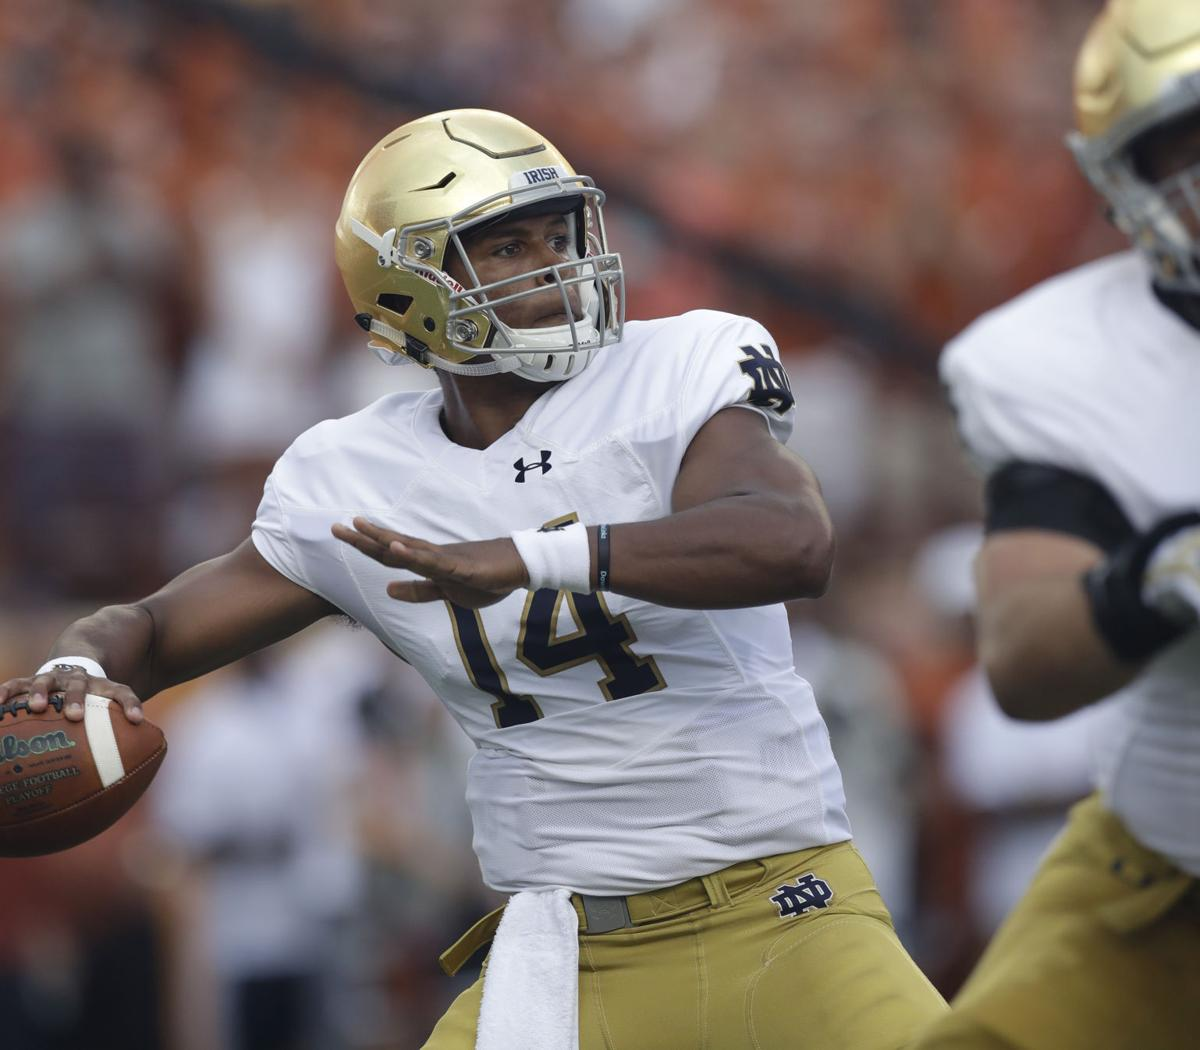 Kizer or bust